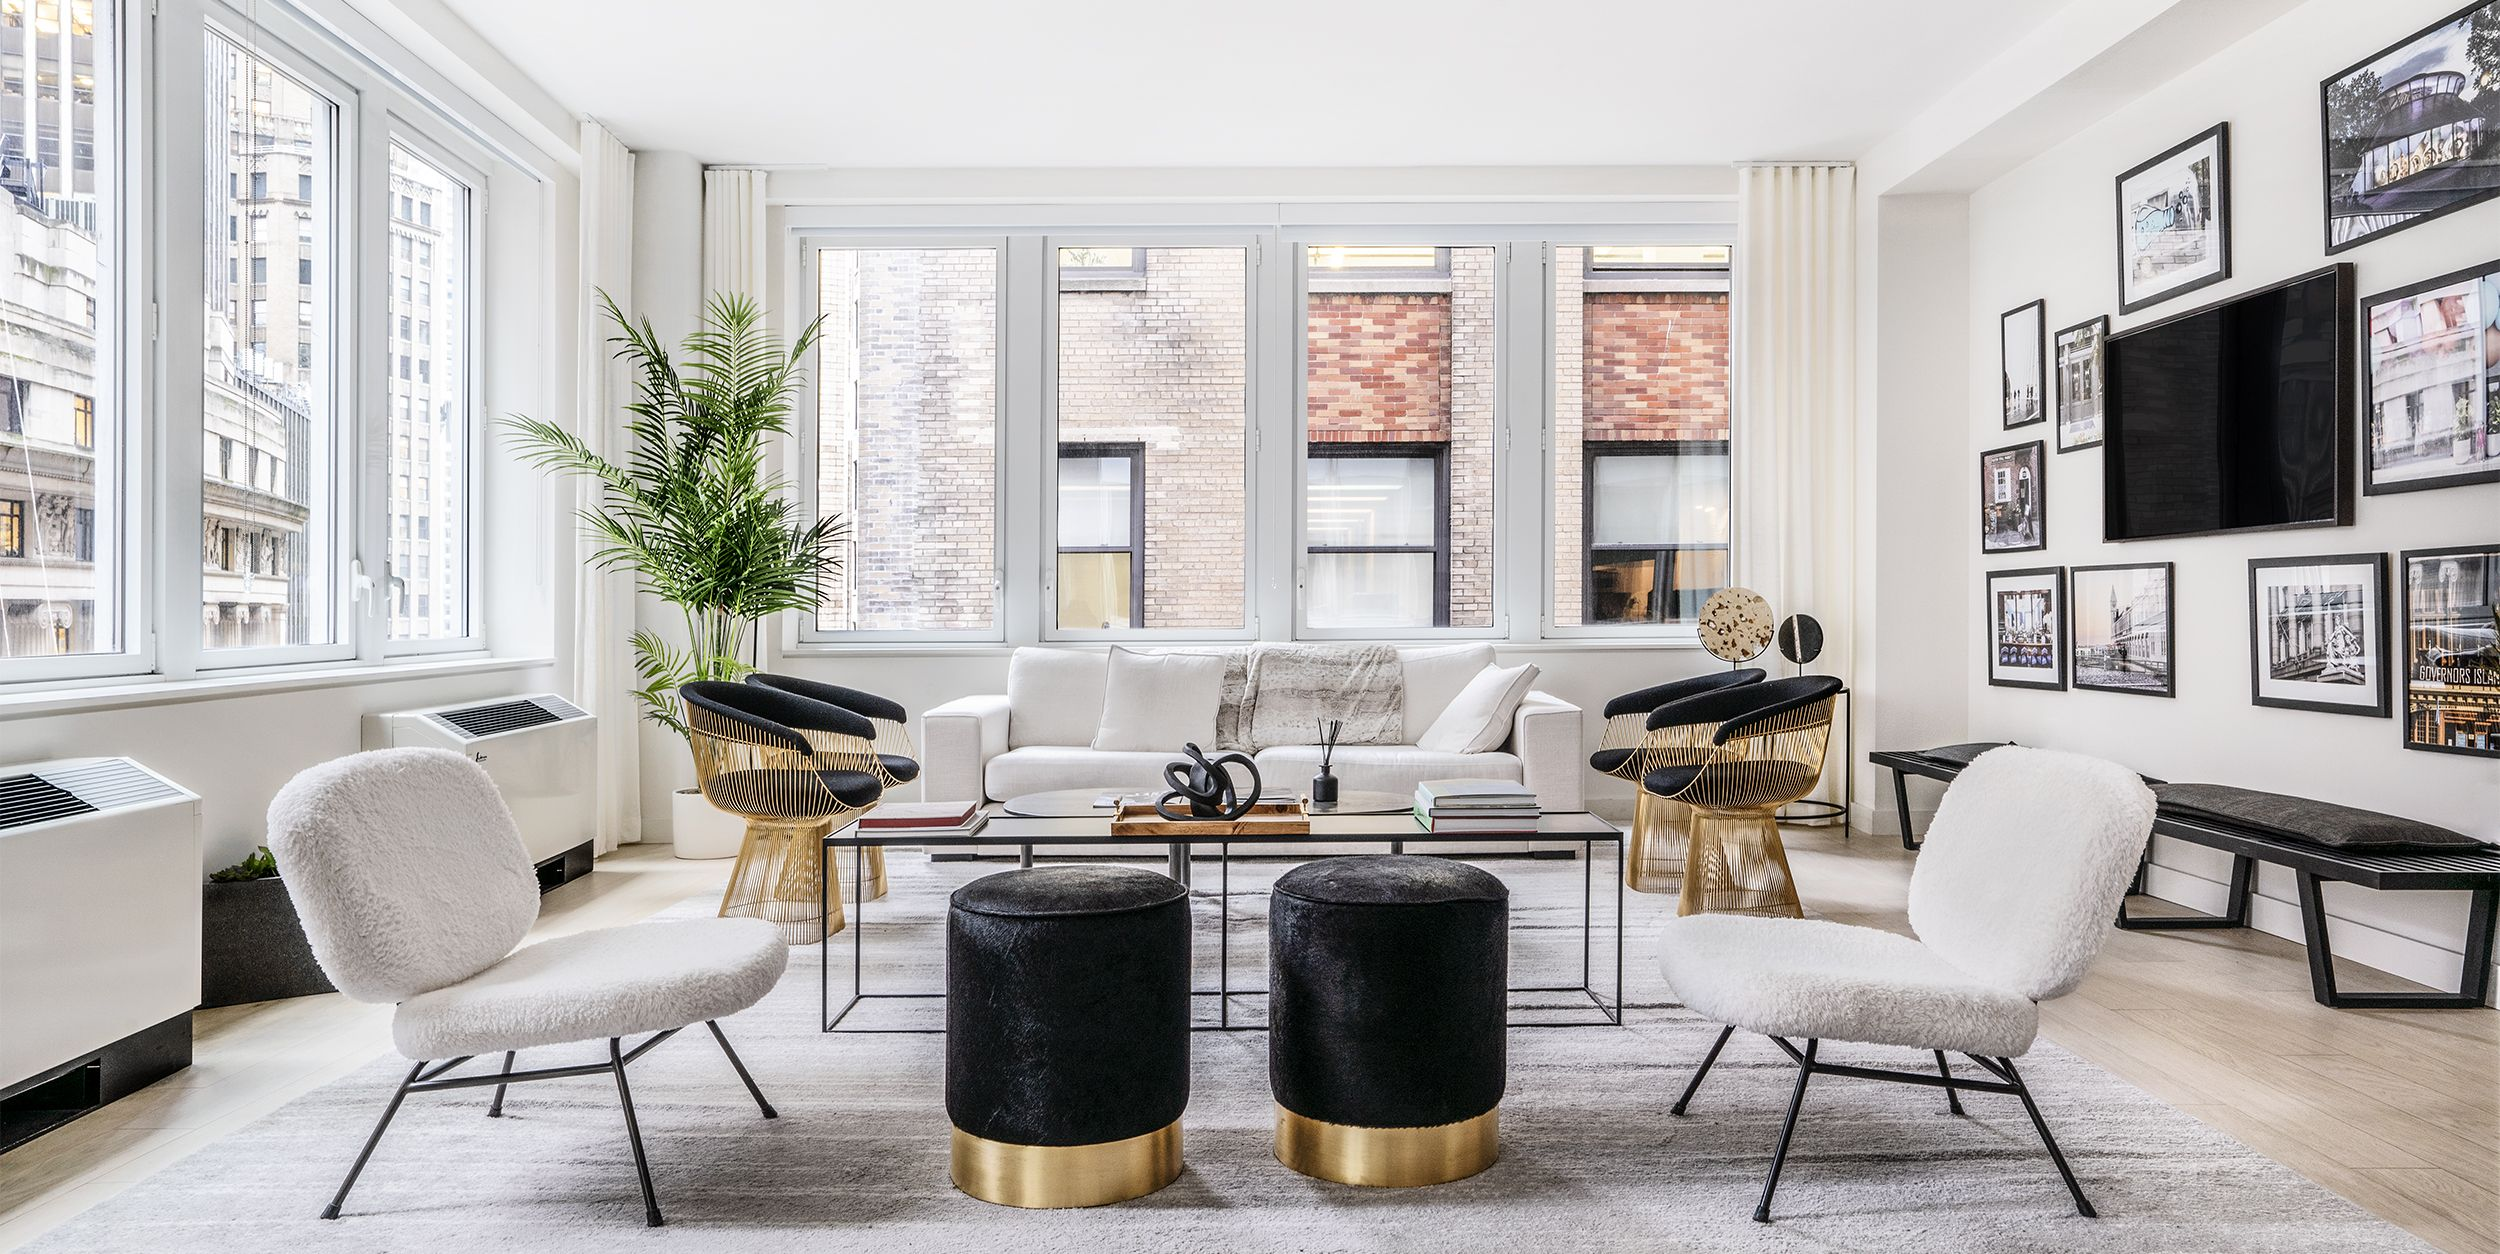 First Look: Inside 20 Broad, FiDi's New Luxury Rental Building